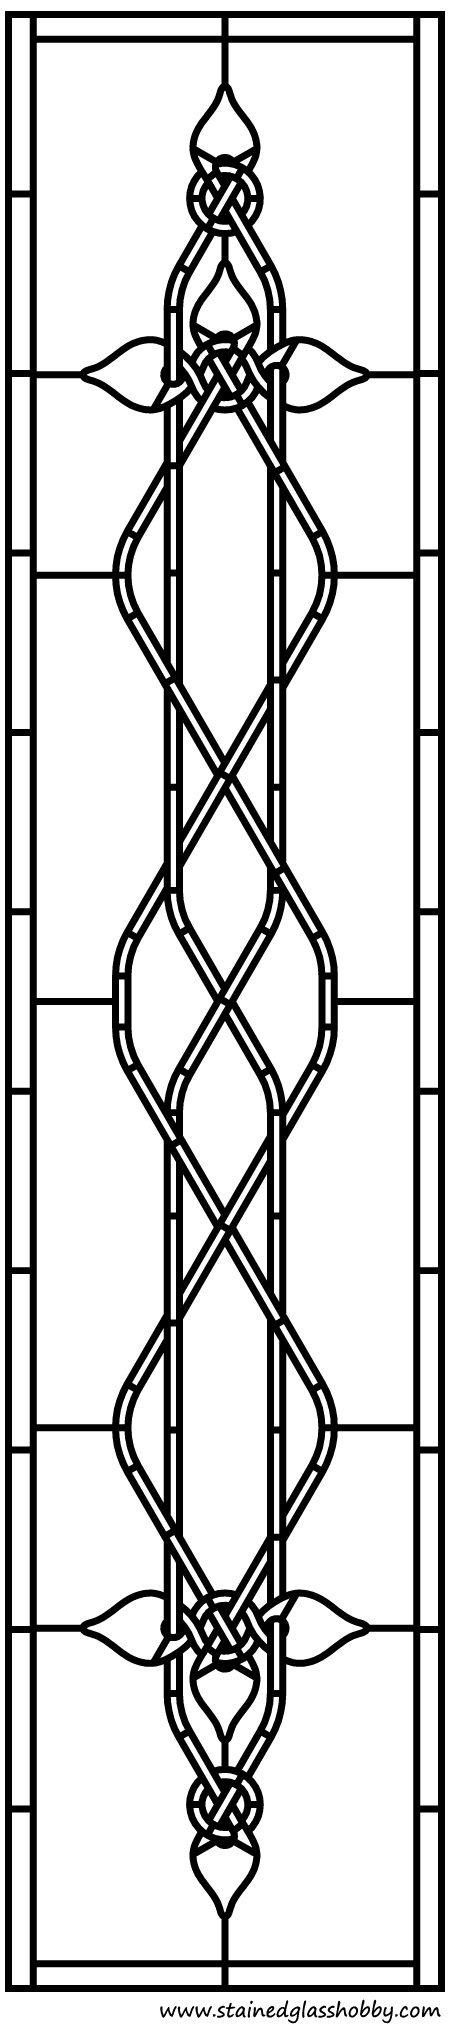 Celtic stained glass design pattern